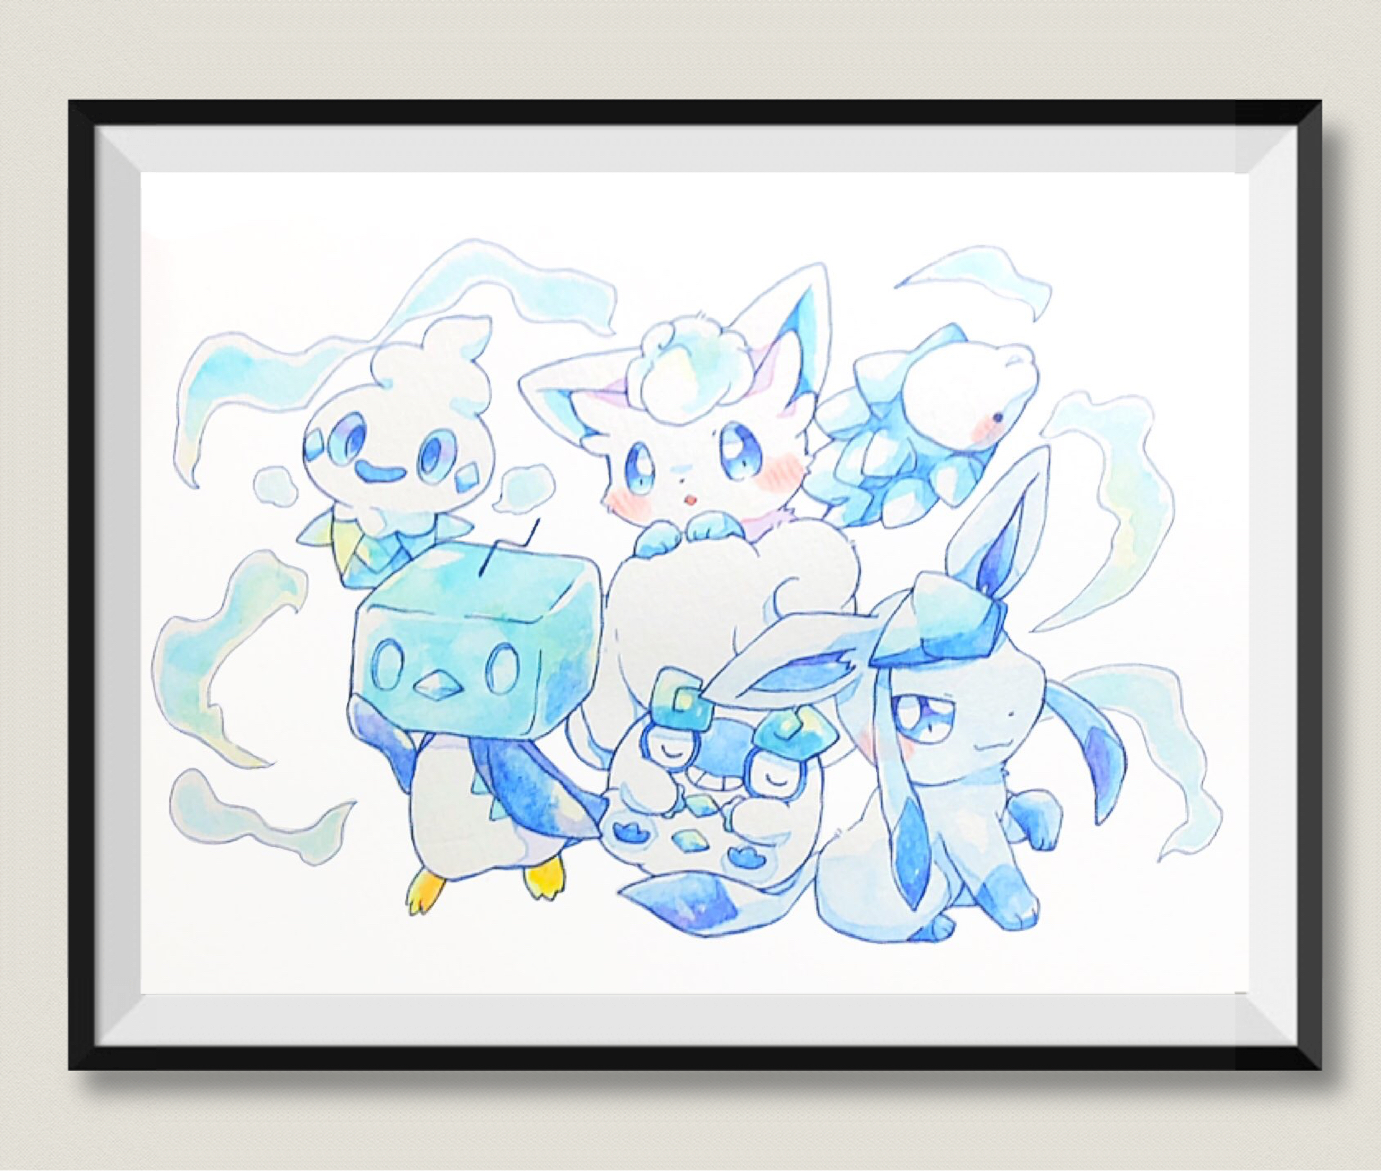 ice pokemon watercolor poster handmade canvas print art a3 a4 poster ambivertdraws online store powered by storenvy ambivertdraws storenvy